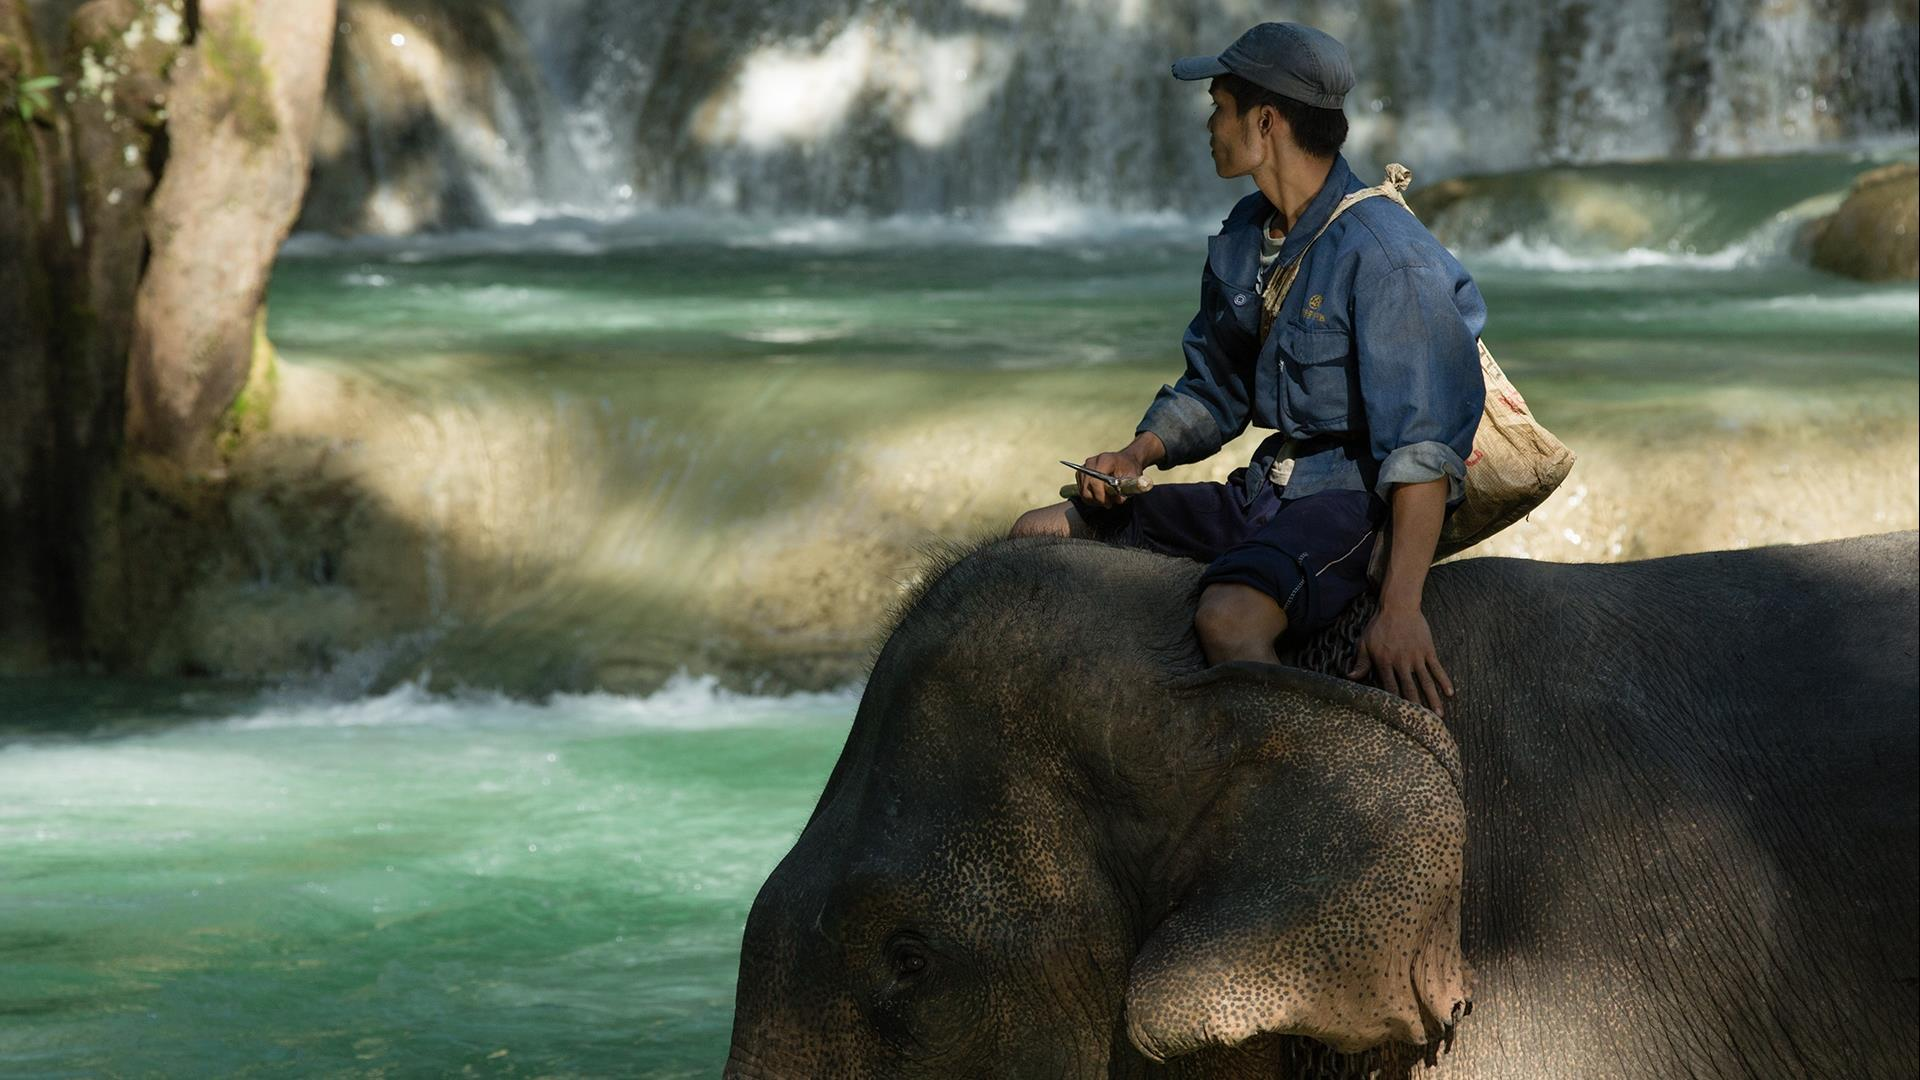 Laos, Luang Prabang: The Authentic Elephant Experience - 2 Days | Living with Elephant Mahout Program at Elephant Village